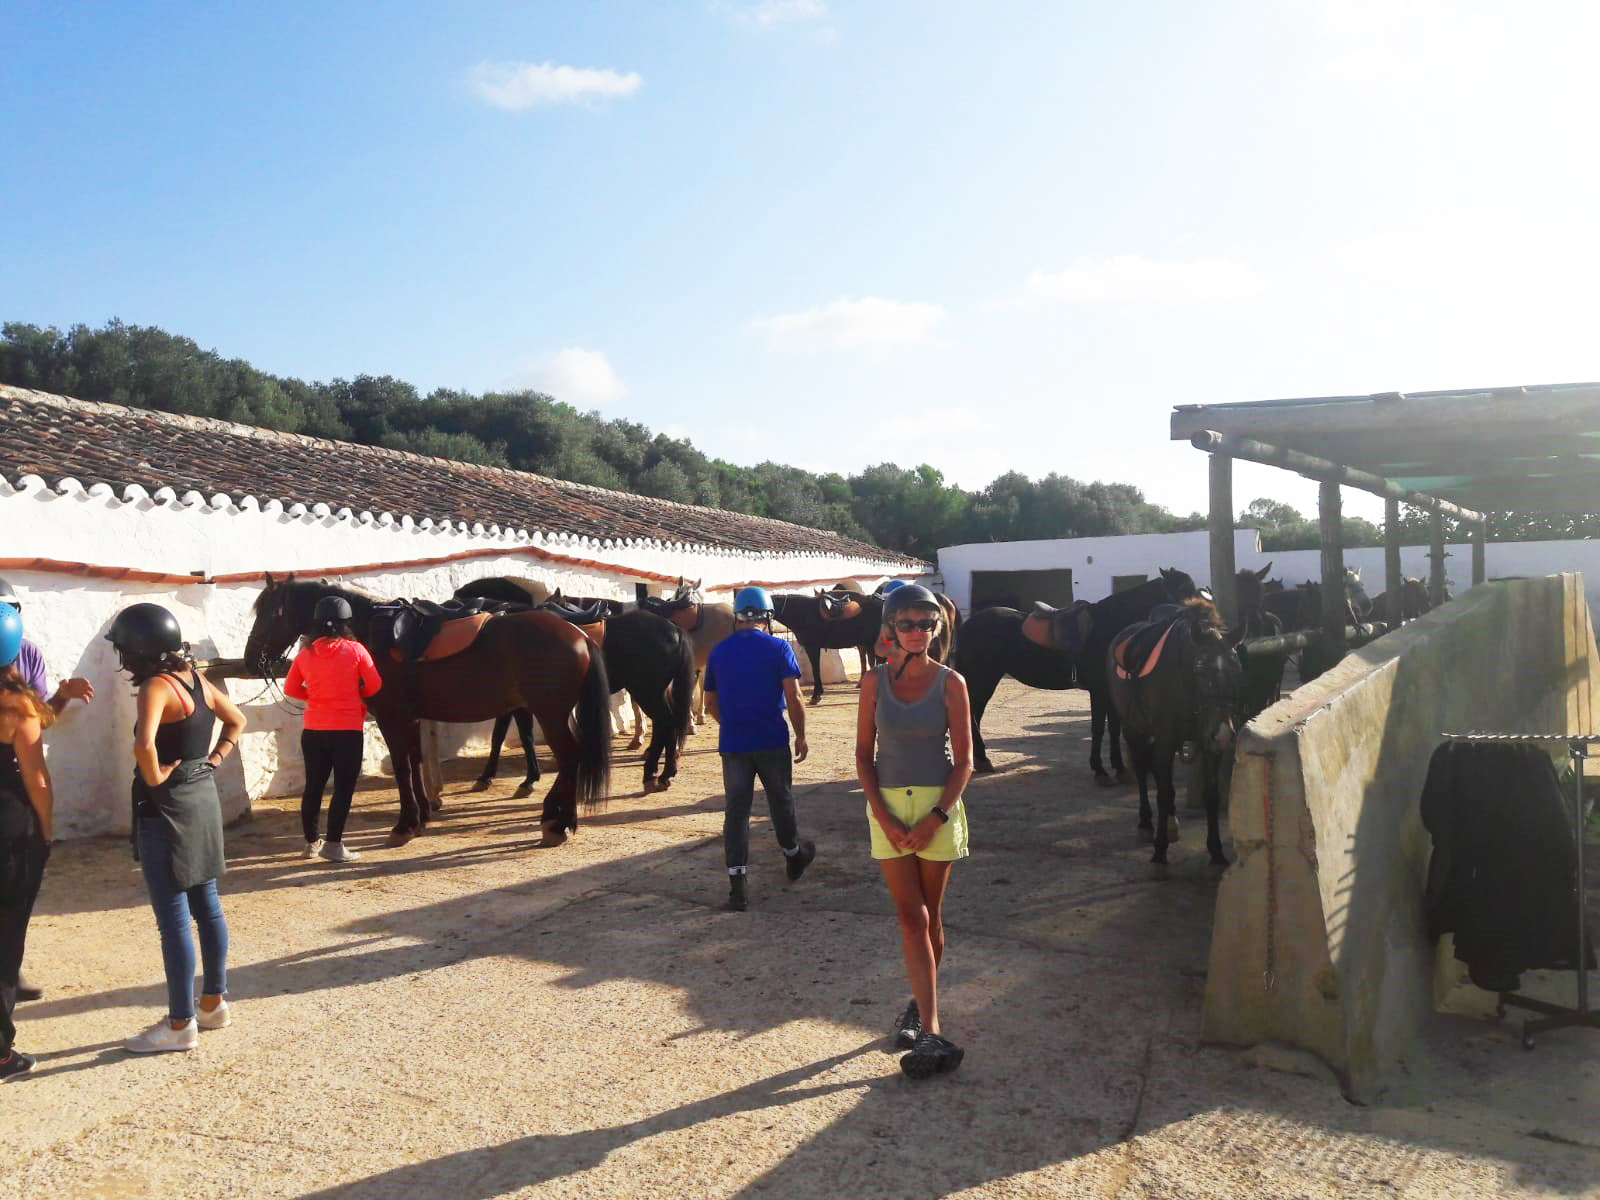 Photo of Lin before horse riding in Menorca